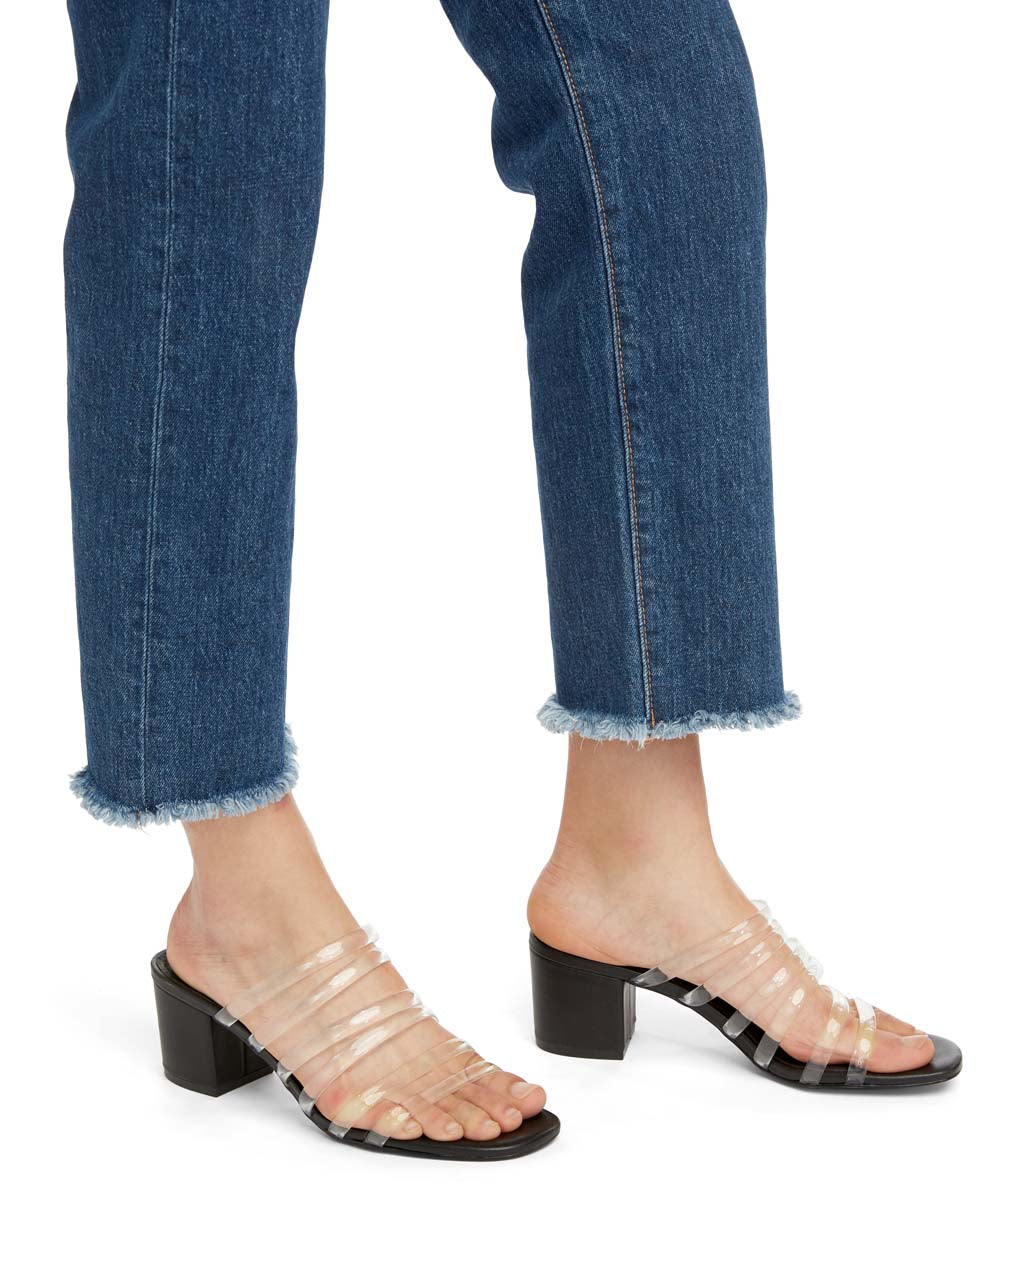 closeup of the legs of a women wearing jeans and clear strappy heels